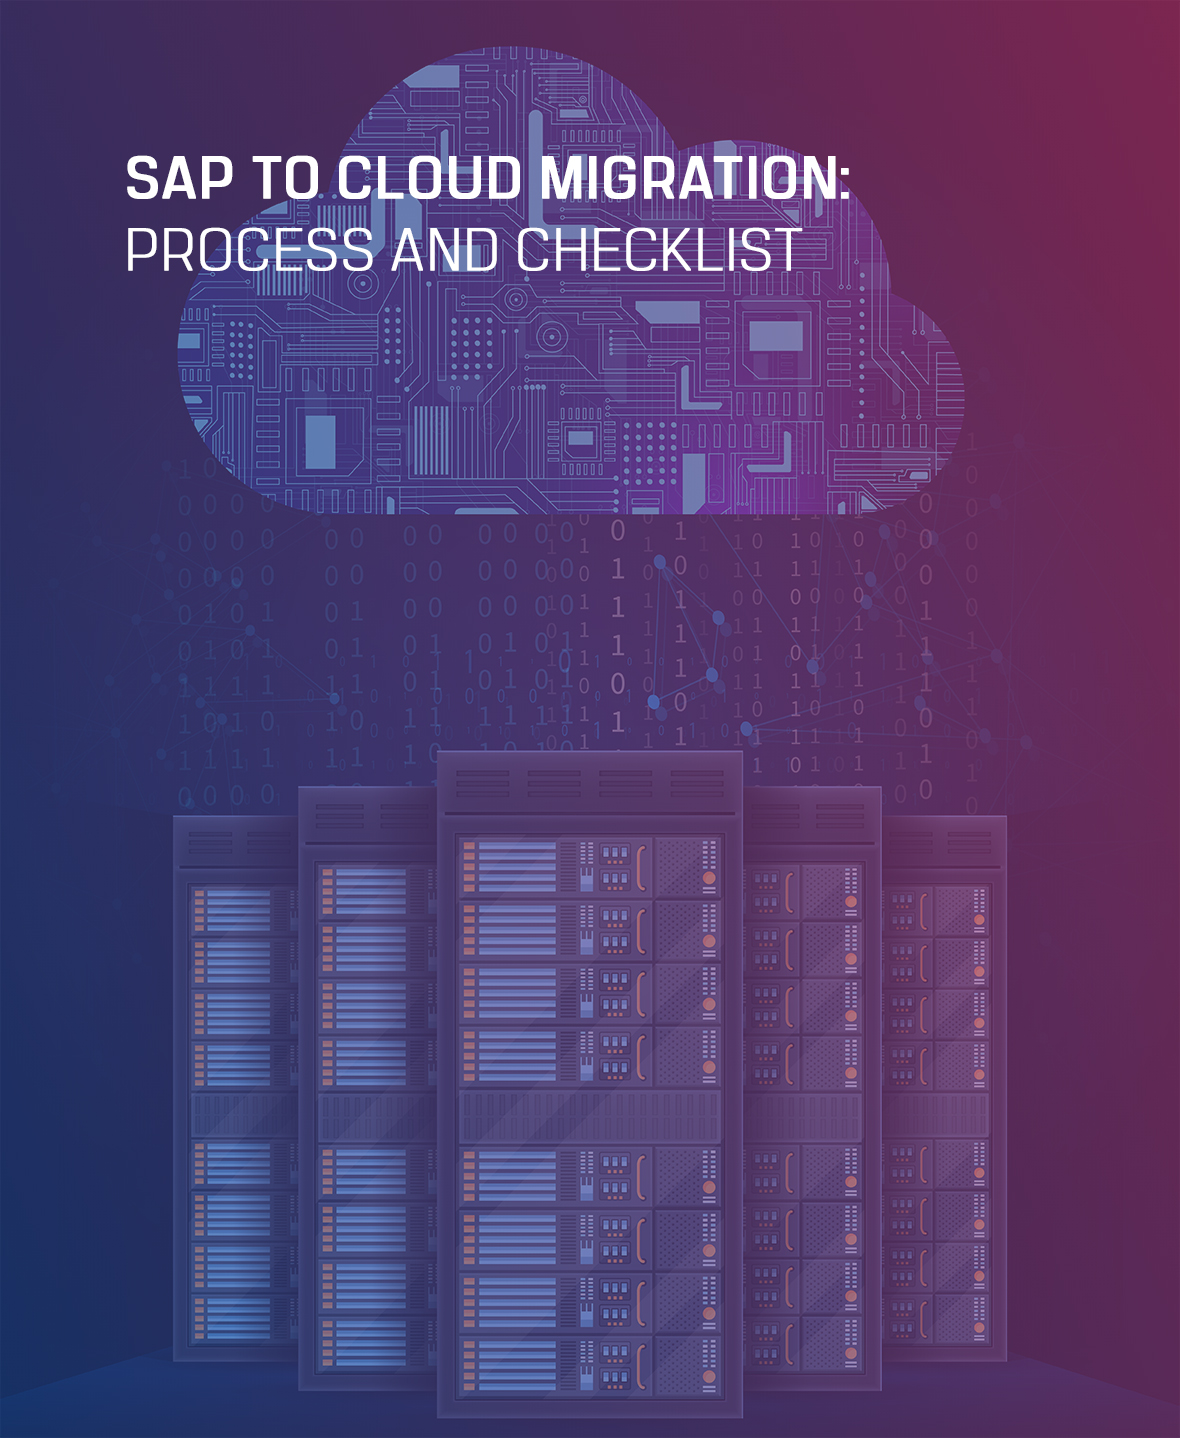 SAP Migration to the Cloud